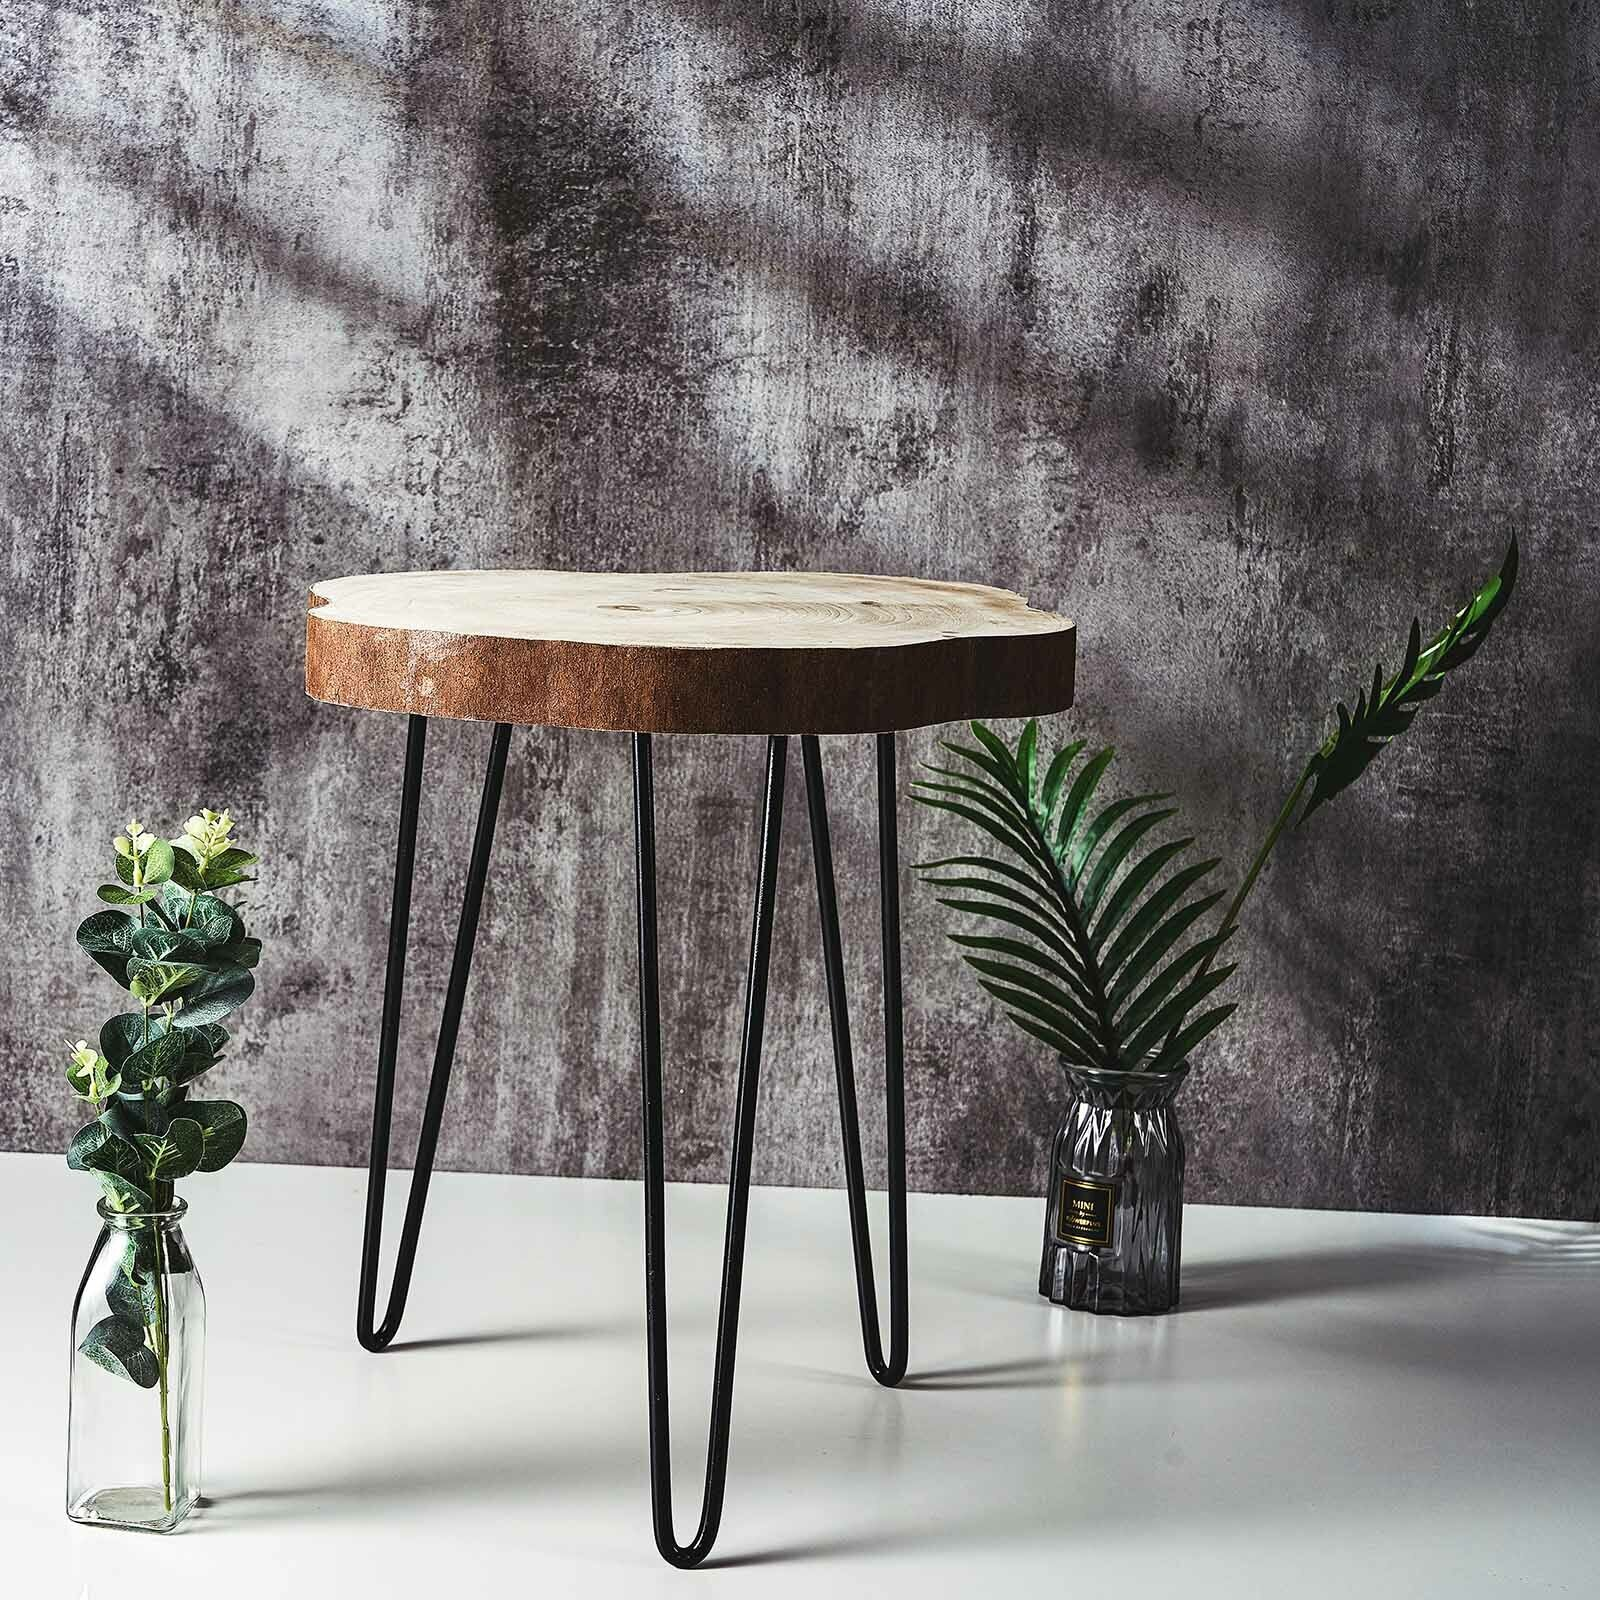 Berkshire Natural Live Edge Wood Round End Table For Sale Online Ebay